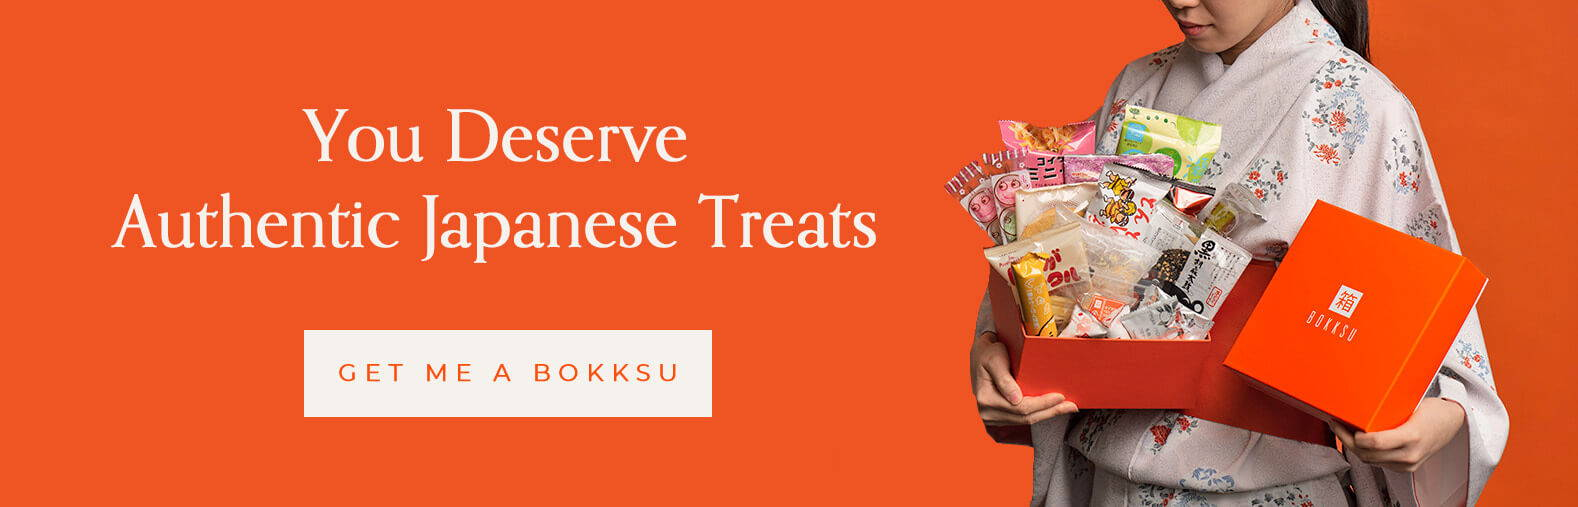 join bokksu japanese snack subscripton box service today